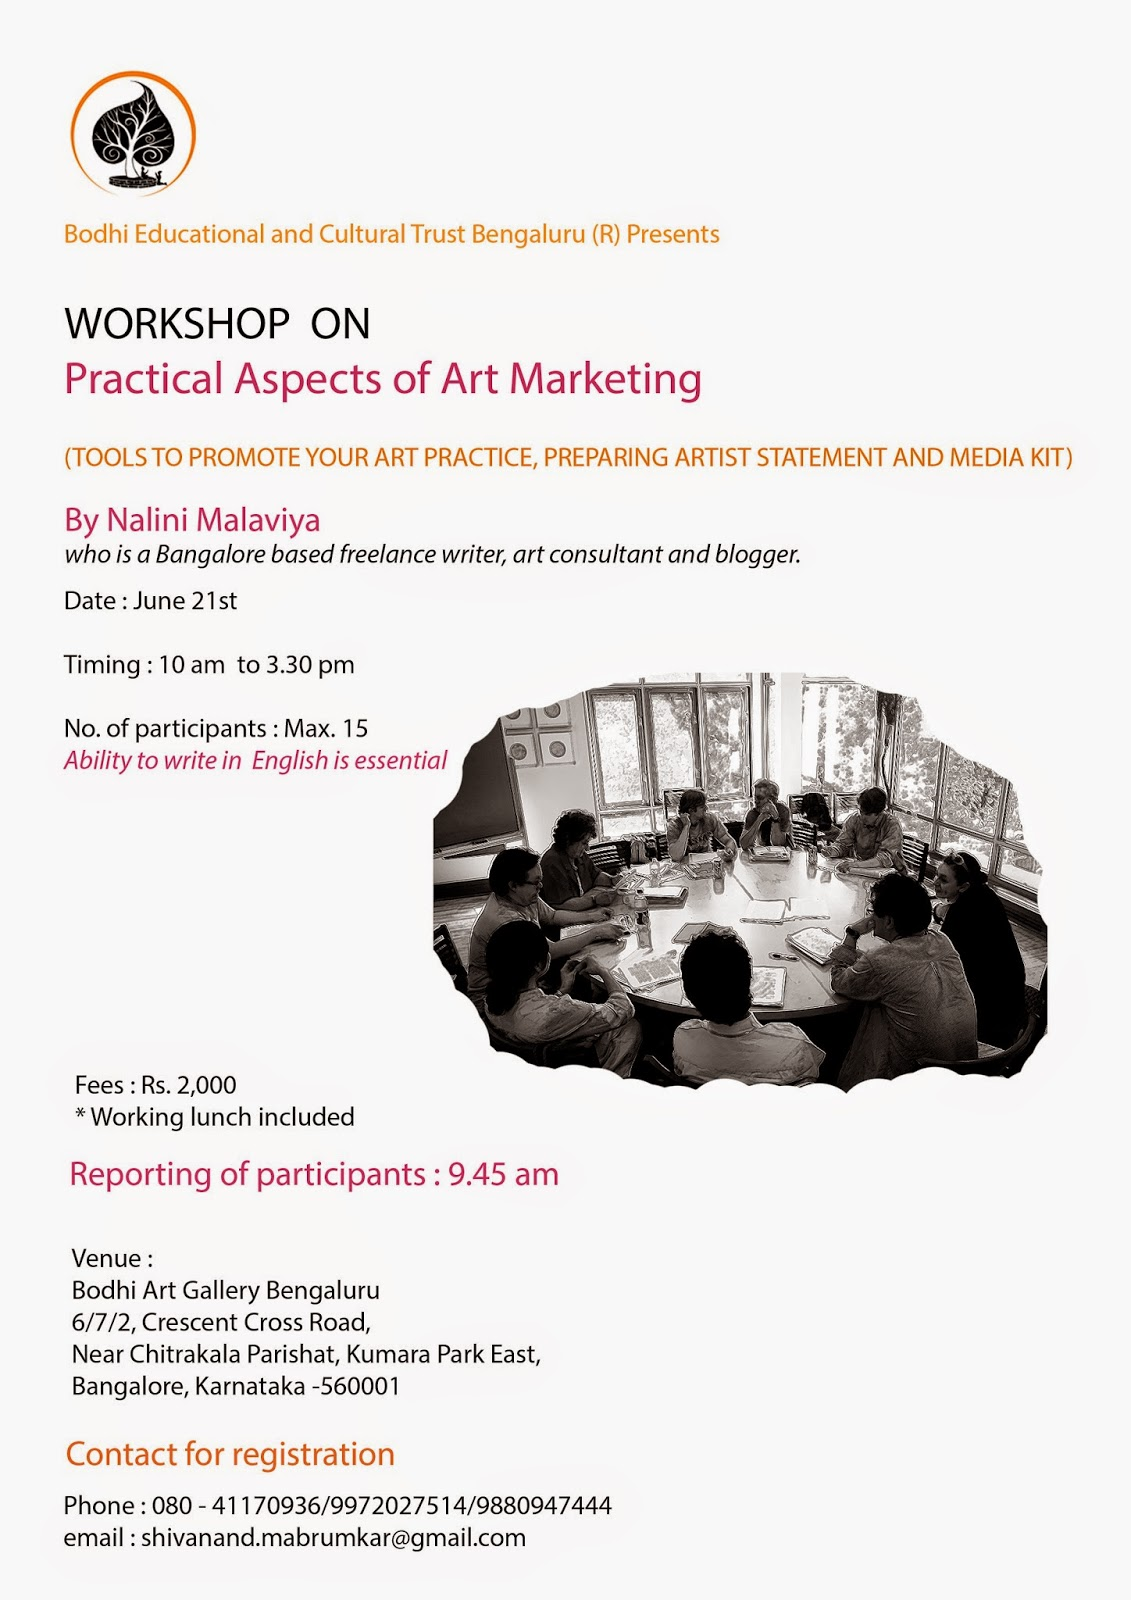 Workshop on 'Practical Aspects  of  Art Marketing' on June 2st, 2014 at Bodhi Art Gallery, Bangalore